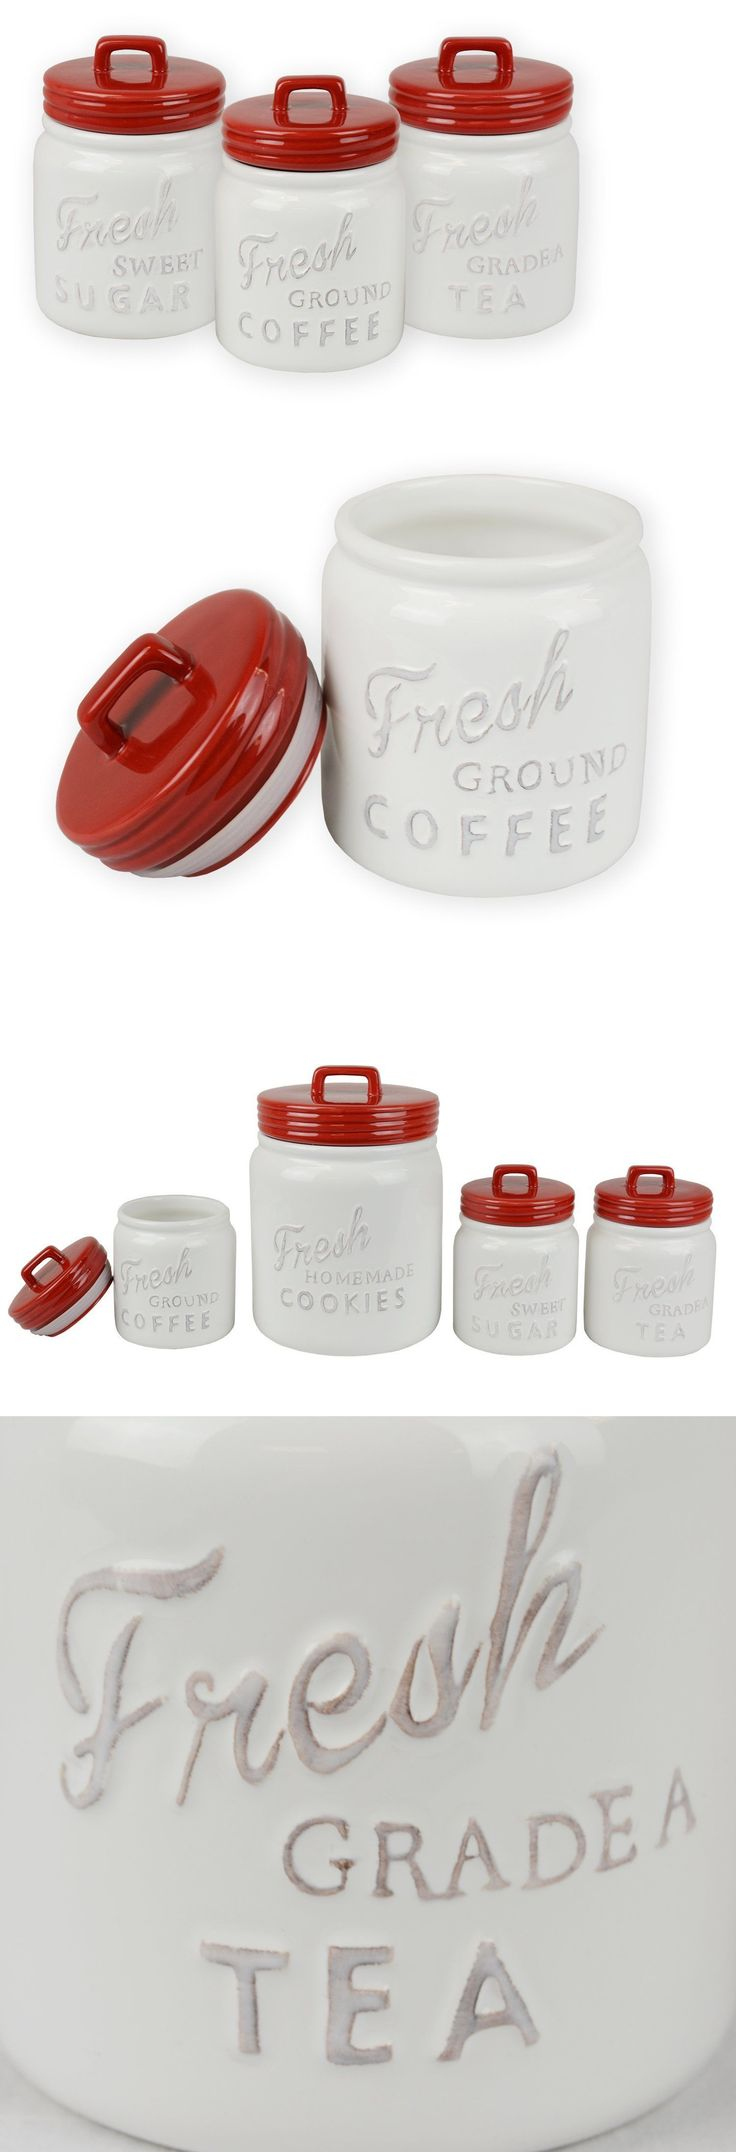 Tuscan old world drake design medium berry kitchen canisters set of 3 - Canisters And Jars 20654 Farmhouse Kitchen Ceramic Canisters Mason Jar Style Jars 3 Piece Red